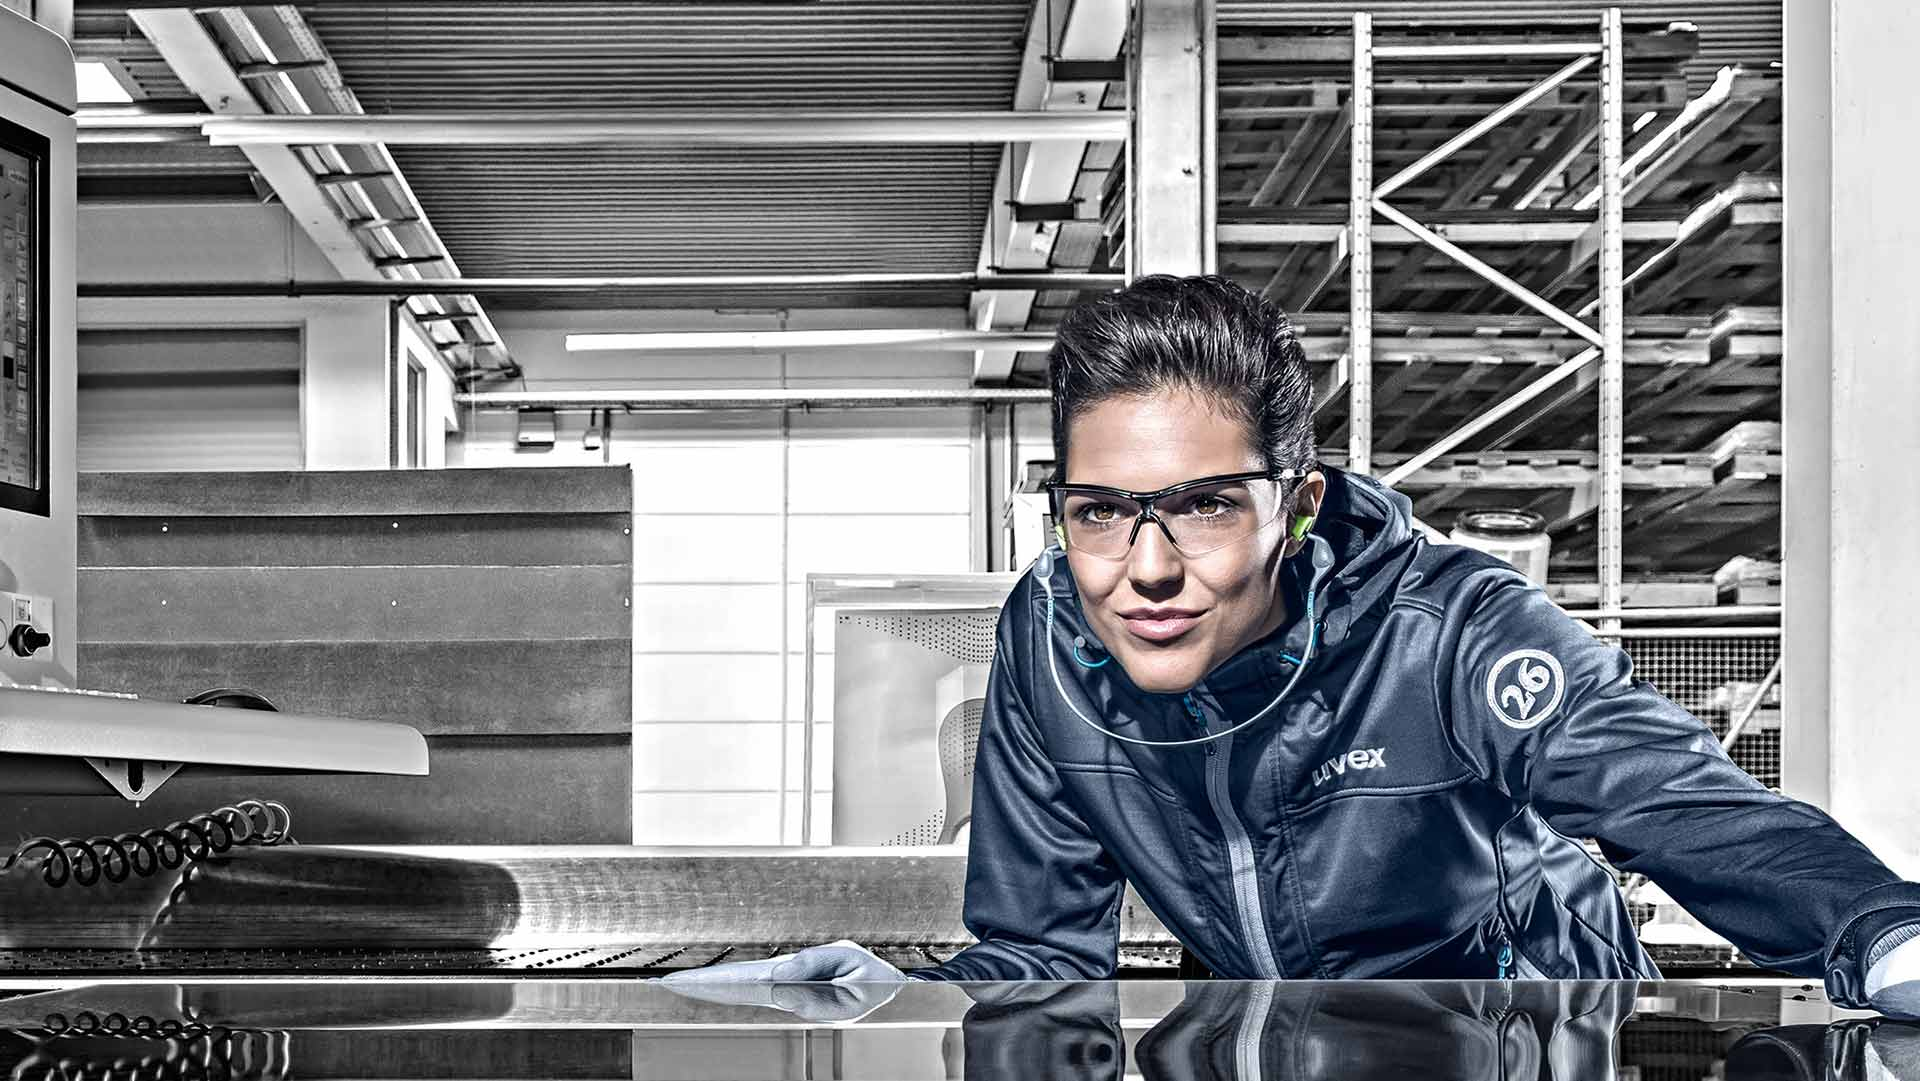 Female worker wearing uvex safety glasses